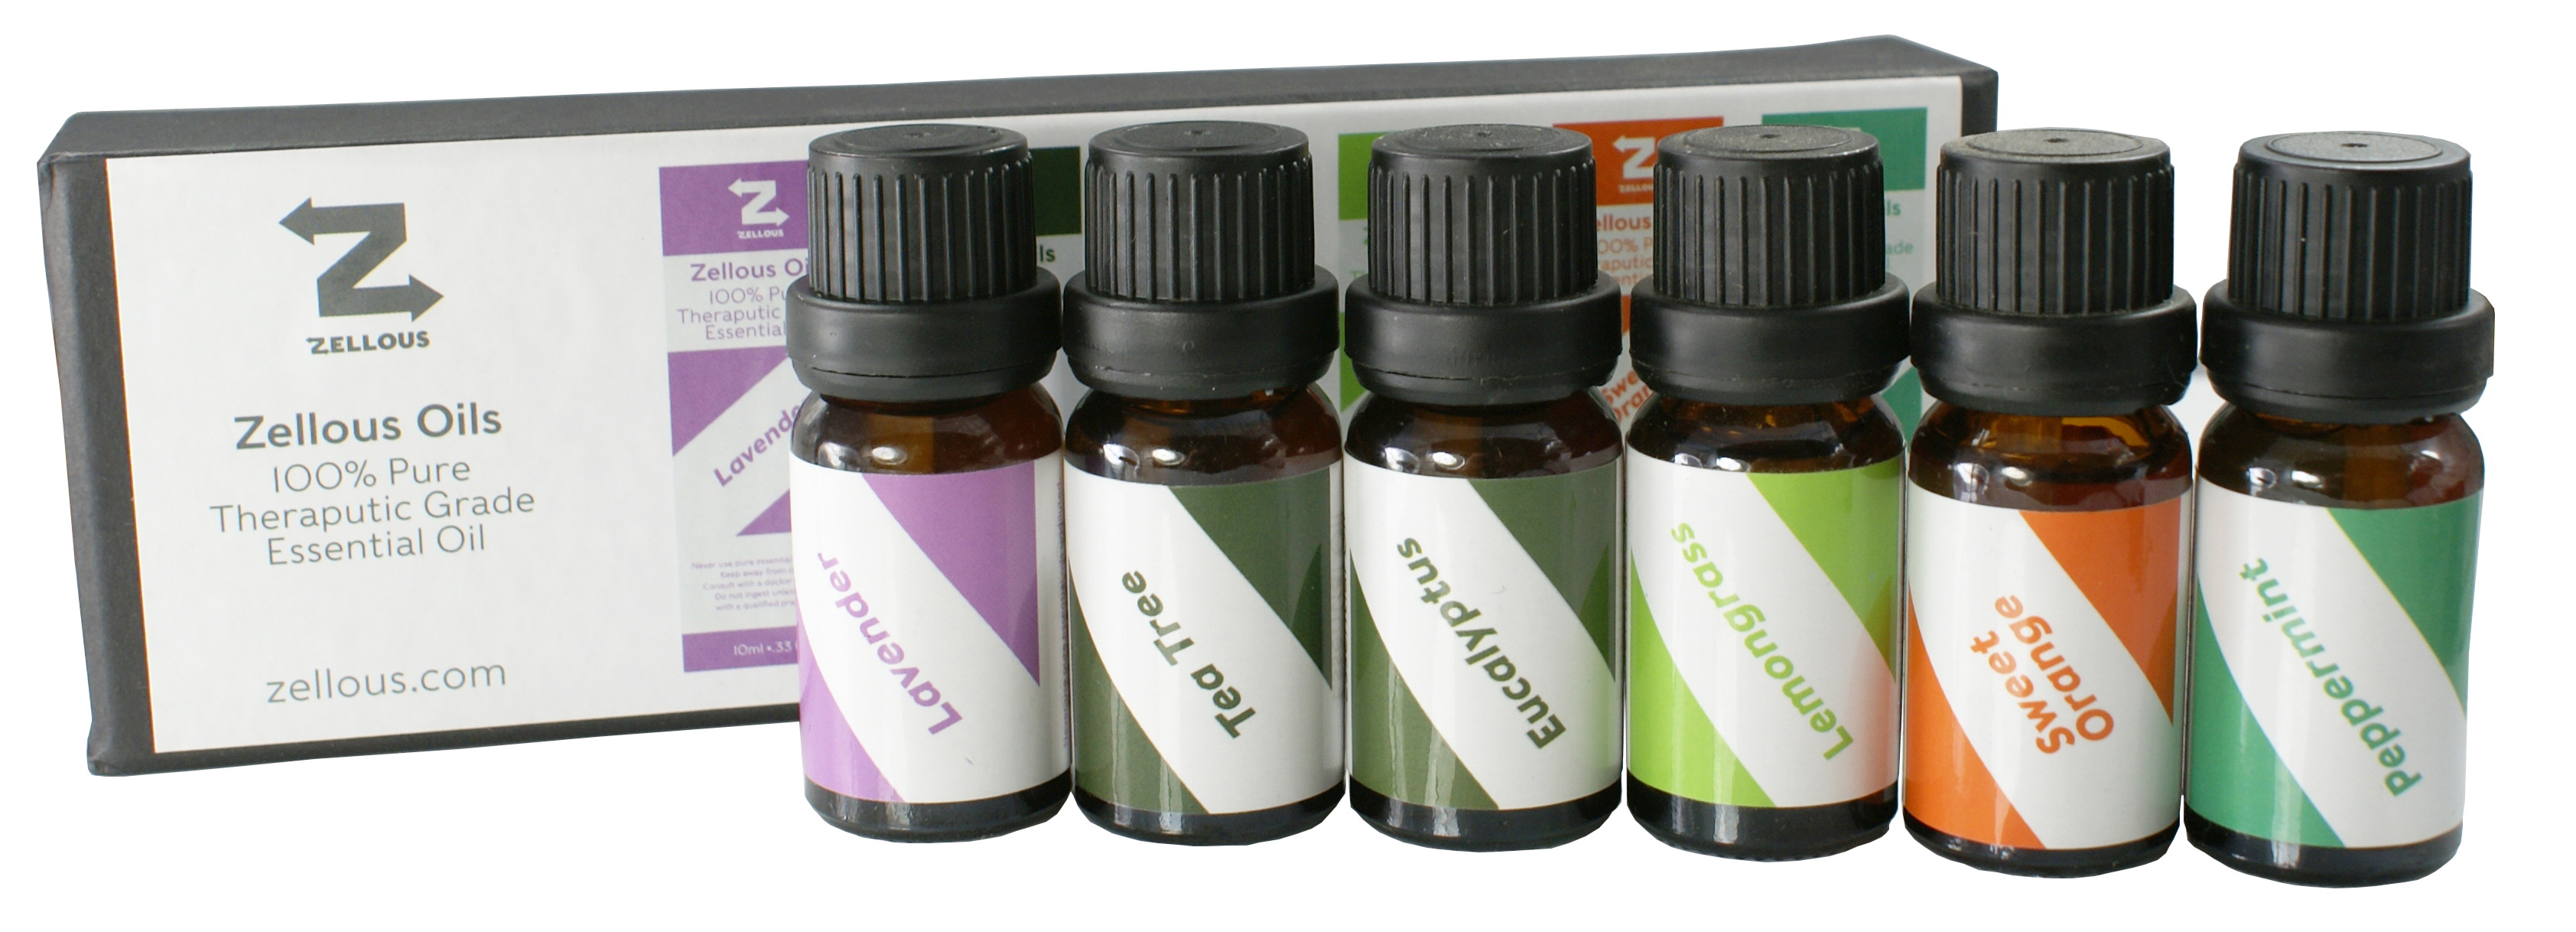 Love Scent coupon: Aromatherapy Top 6 Essential Oils - 100% Pure & Therapeutic Grade (Lavender, Sweet Orange, Eucalyptus, Peppermint, Tea Tree, Lemongrass)